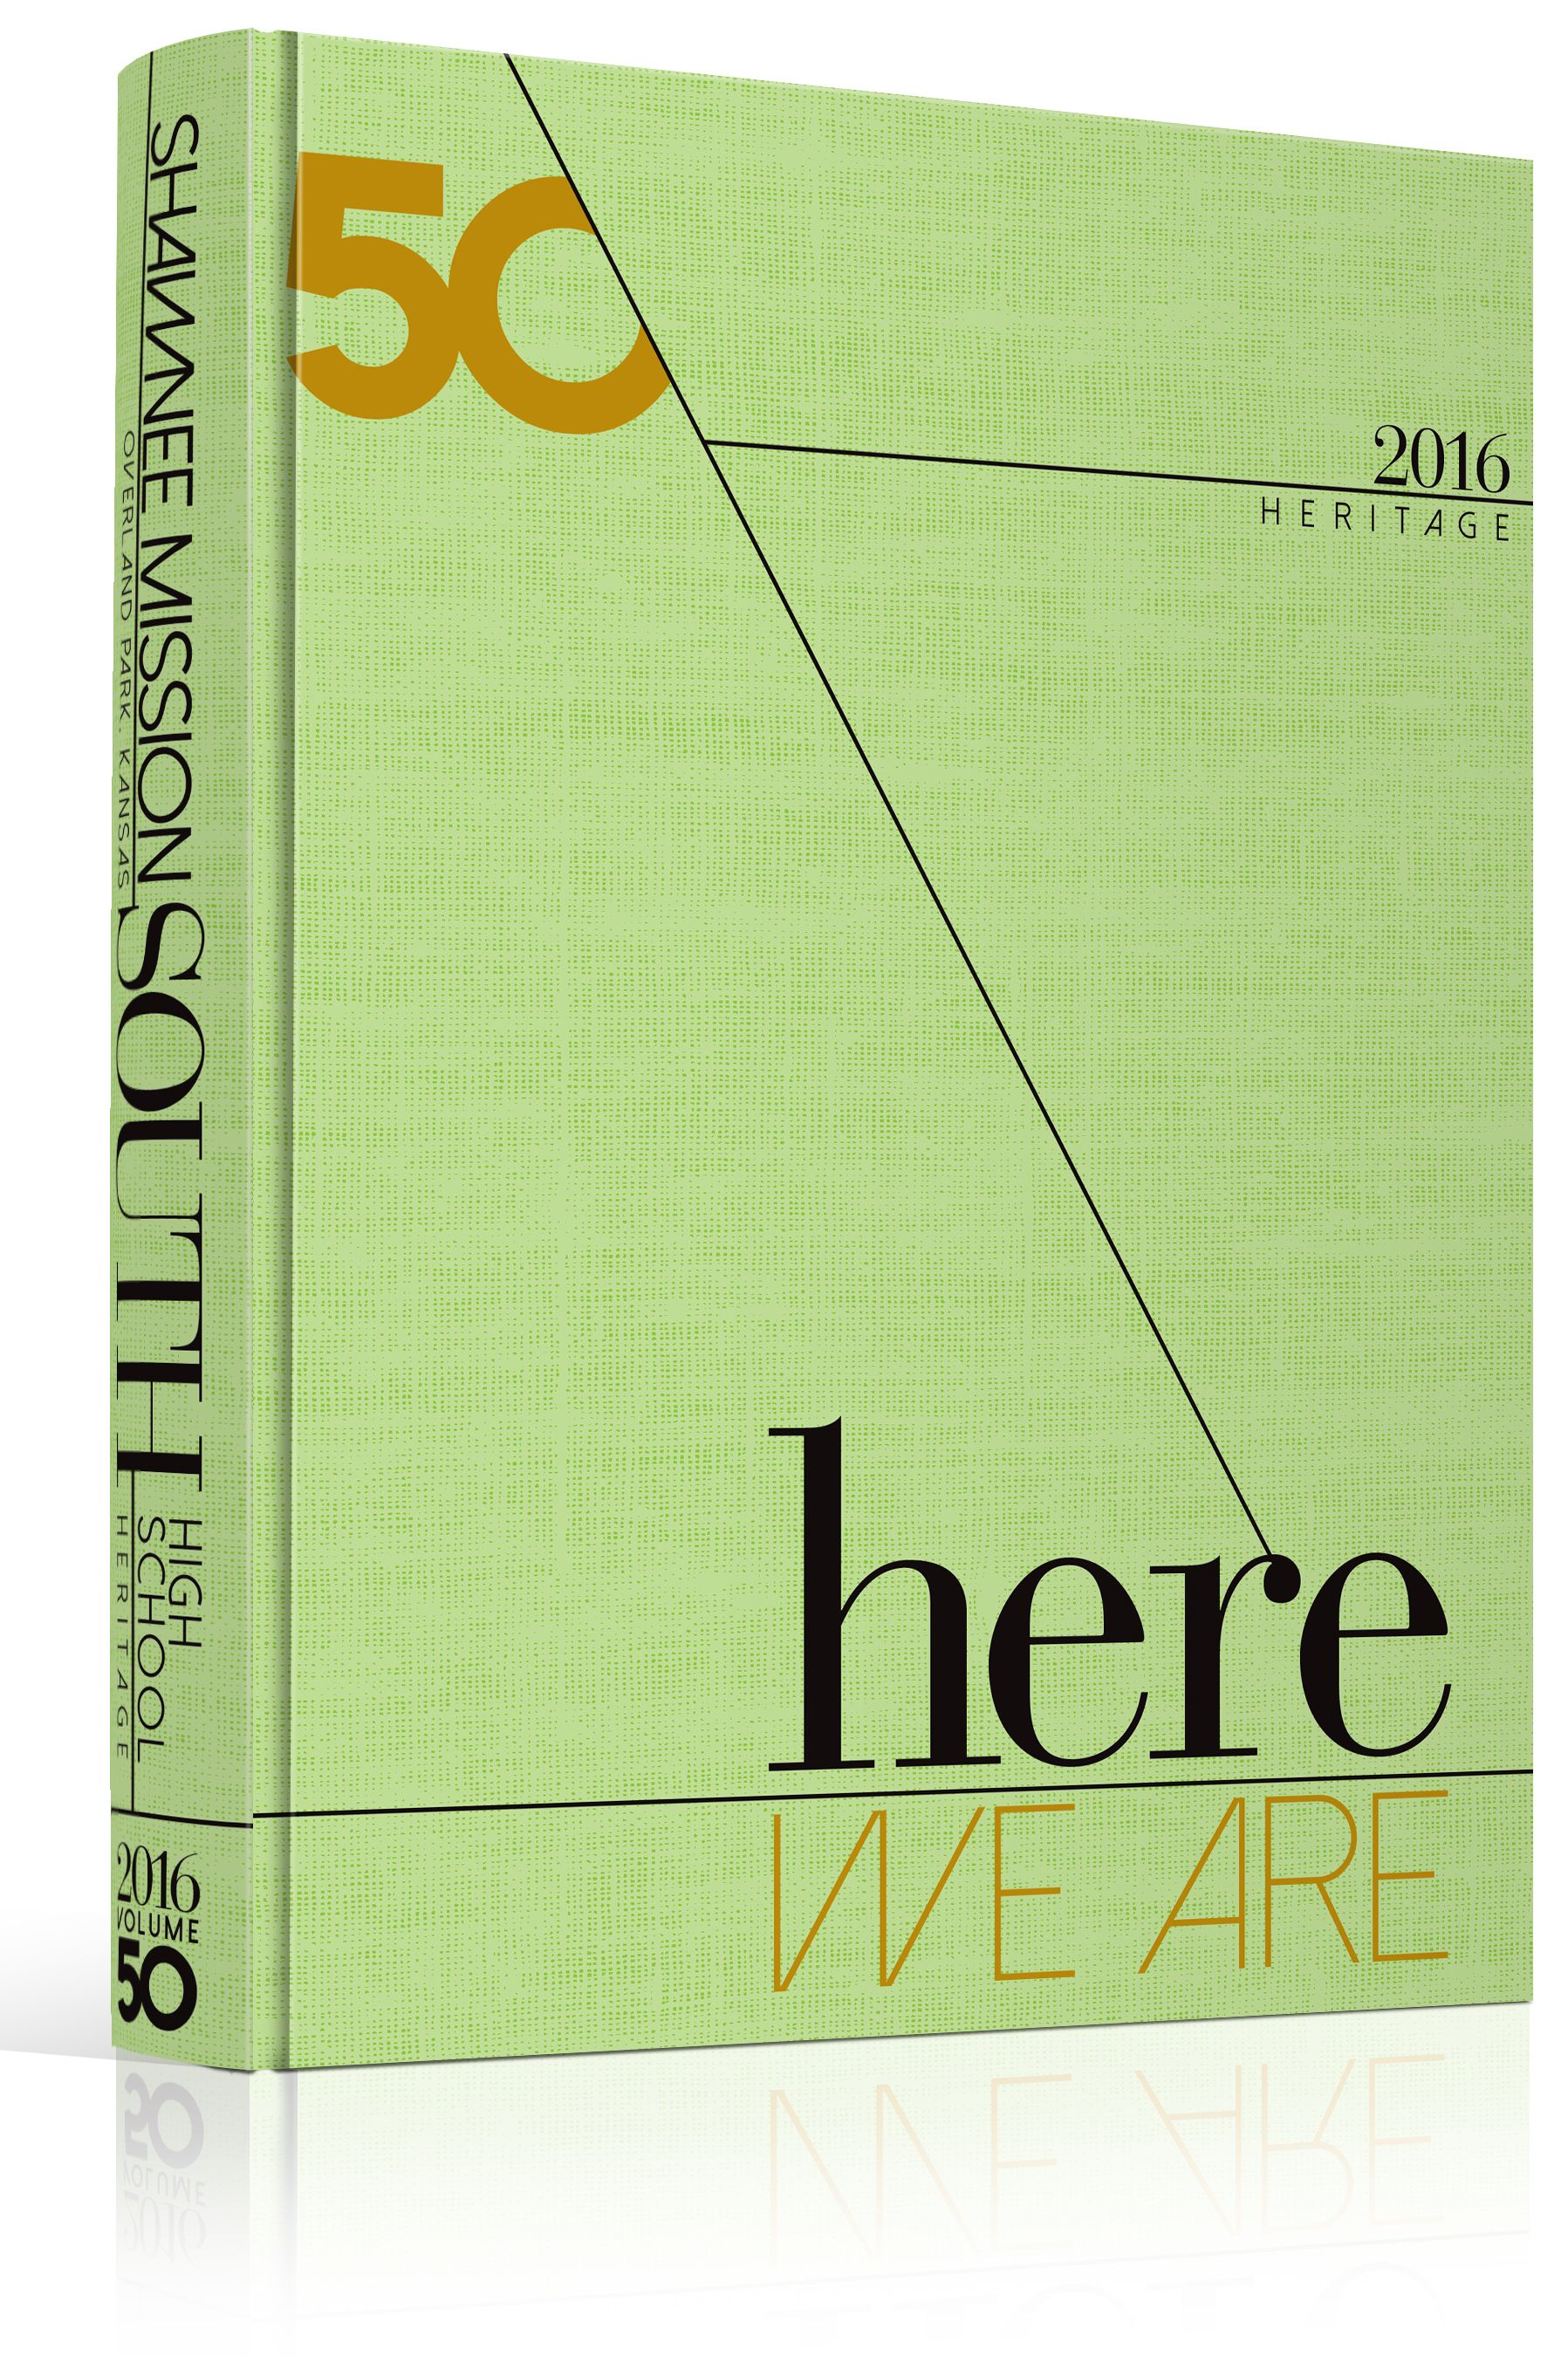 Yearbook Cover Template : Yearbook cover shawnee mission south high schoo quot here